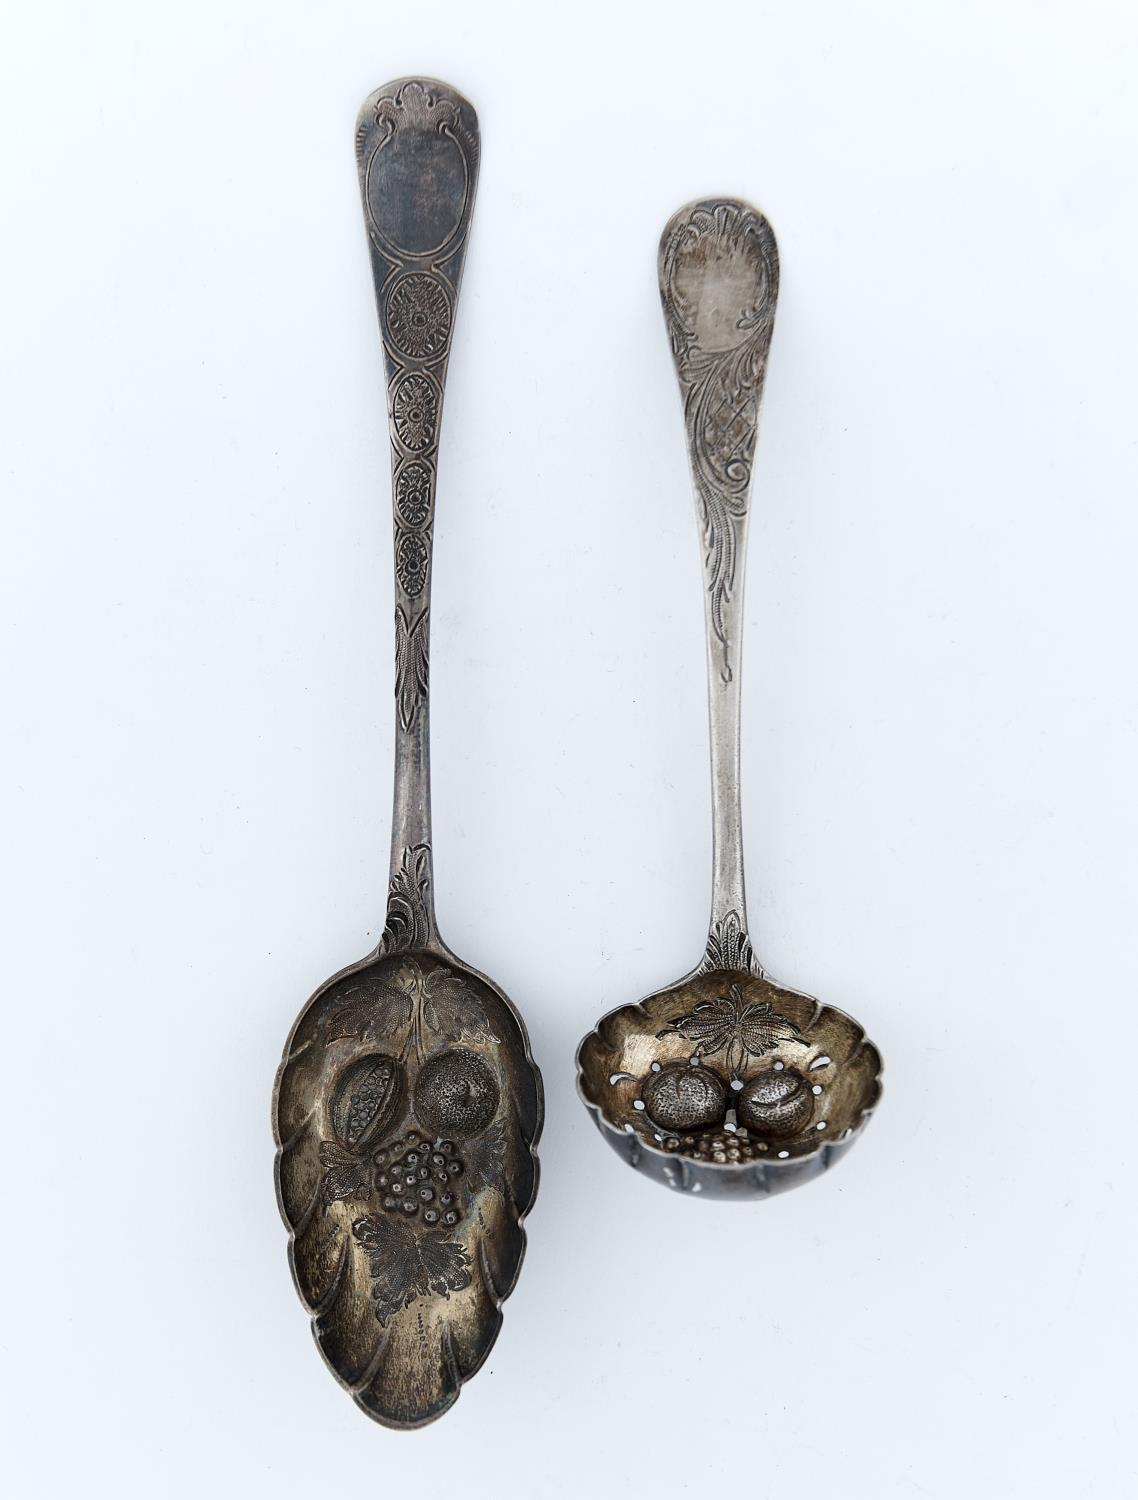 A GEORGE III SILVER TABLESPOON AND SAUCE LADLE, LATER CHASED AND GILT AS BERRY SPOONS, BY